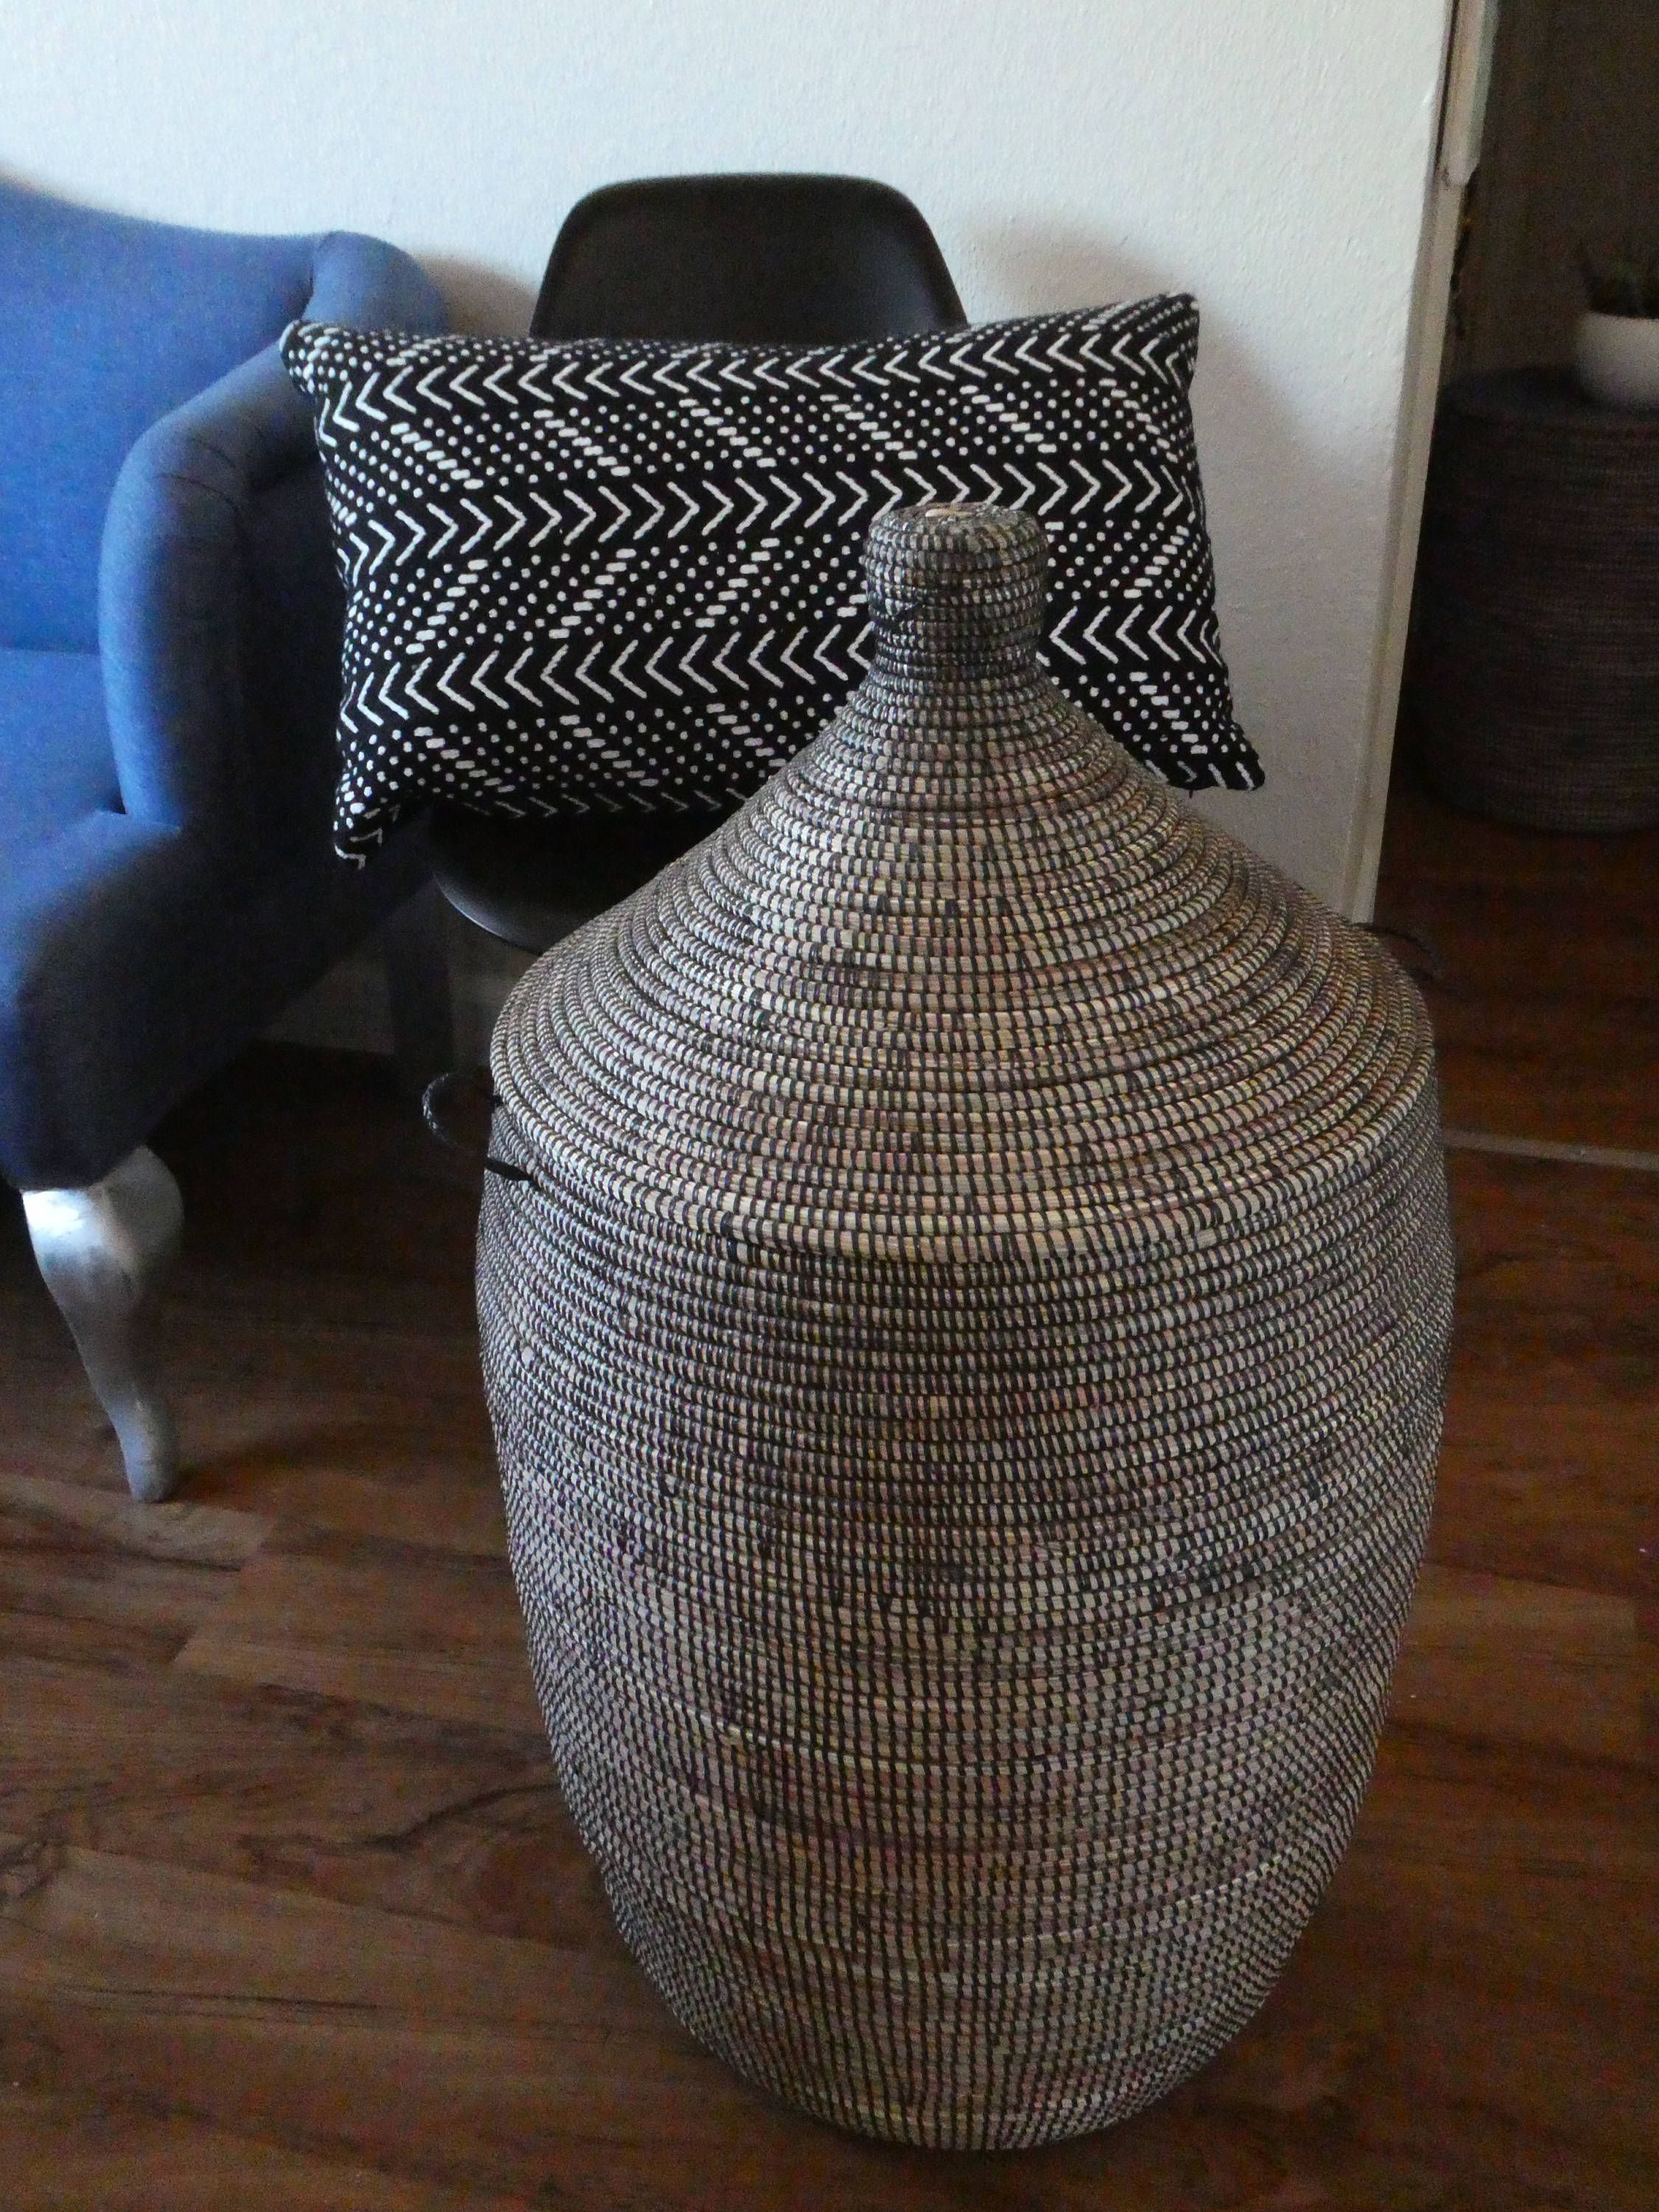 Charcoal Laundry Basket Black Modern Xl Handwoven African Laundry Hamper Ready To Be Shipped Black Laundry Basket Panier Noir Black Laundry Basket Laundry Hamper Laundry Basket